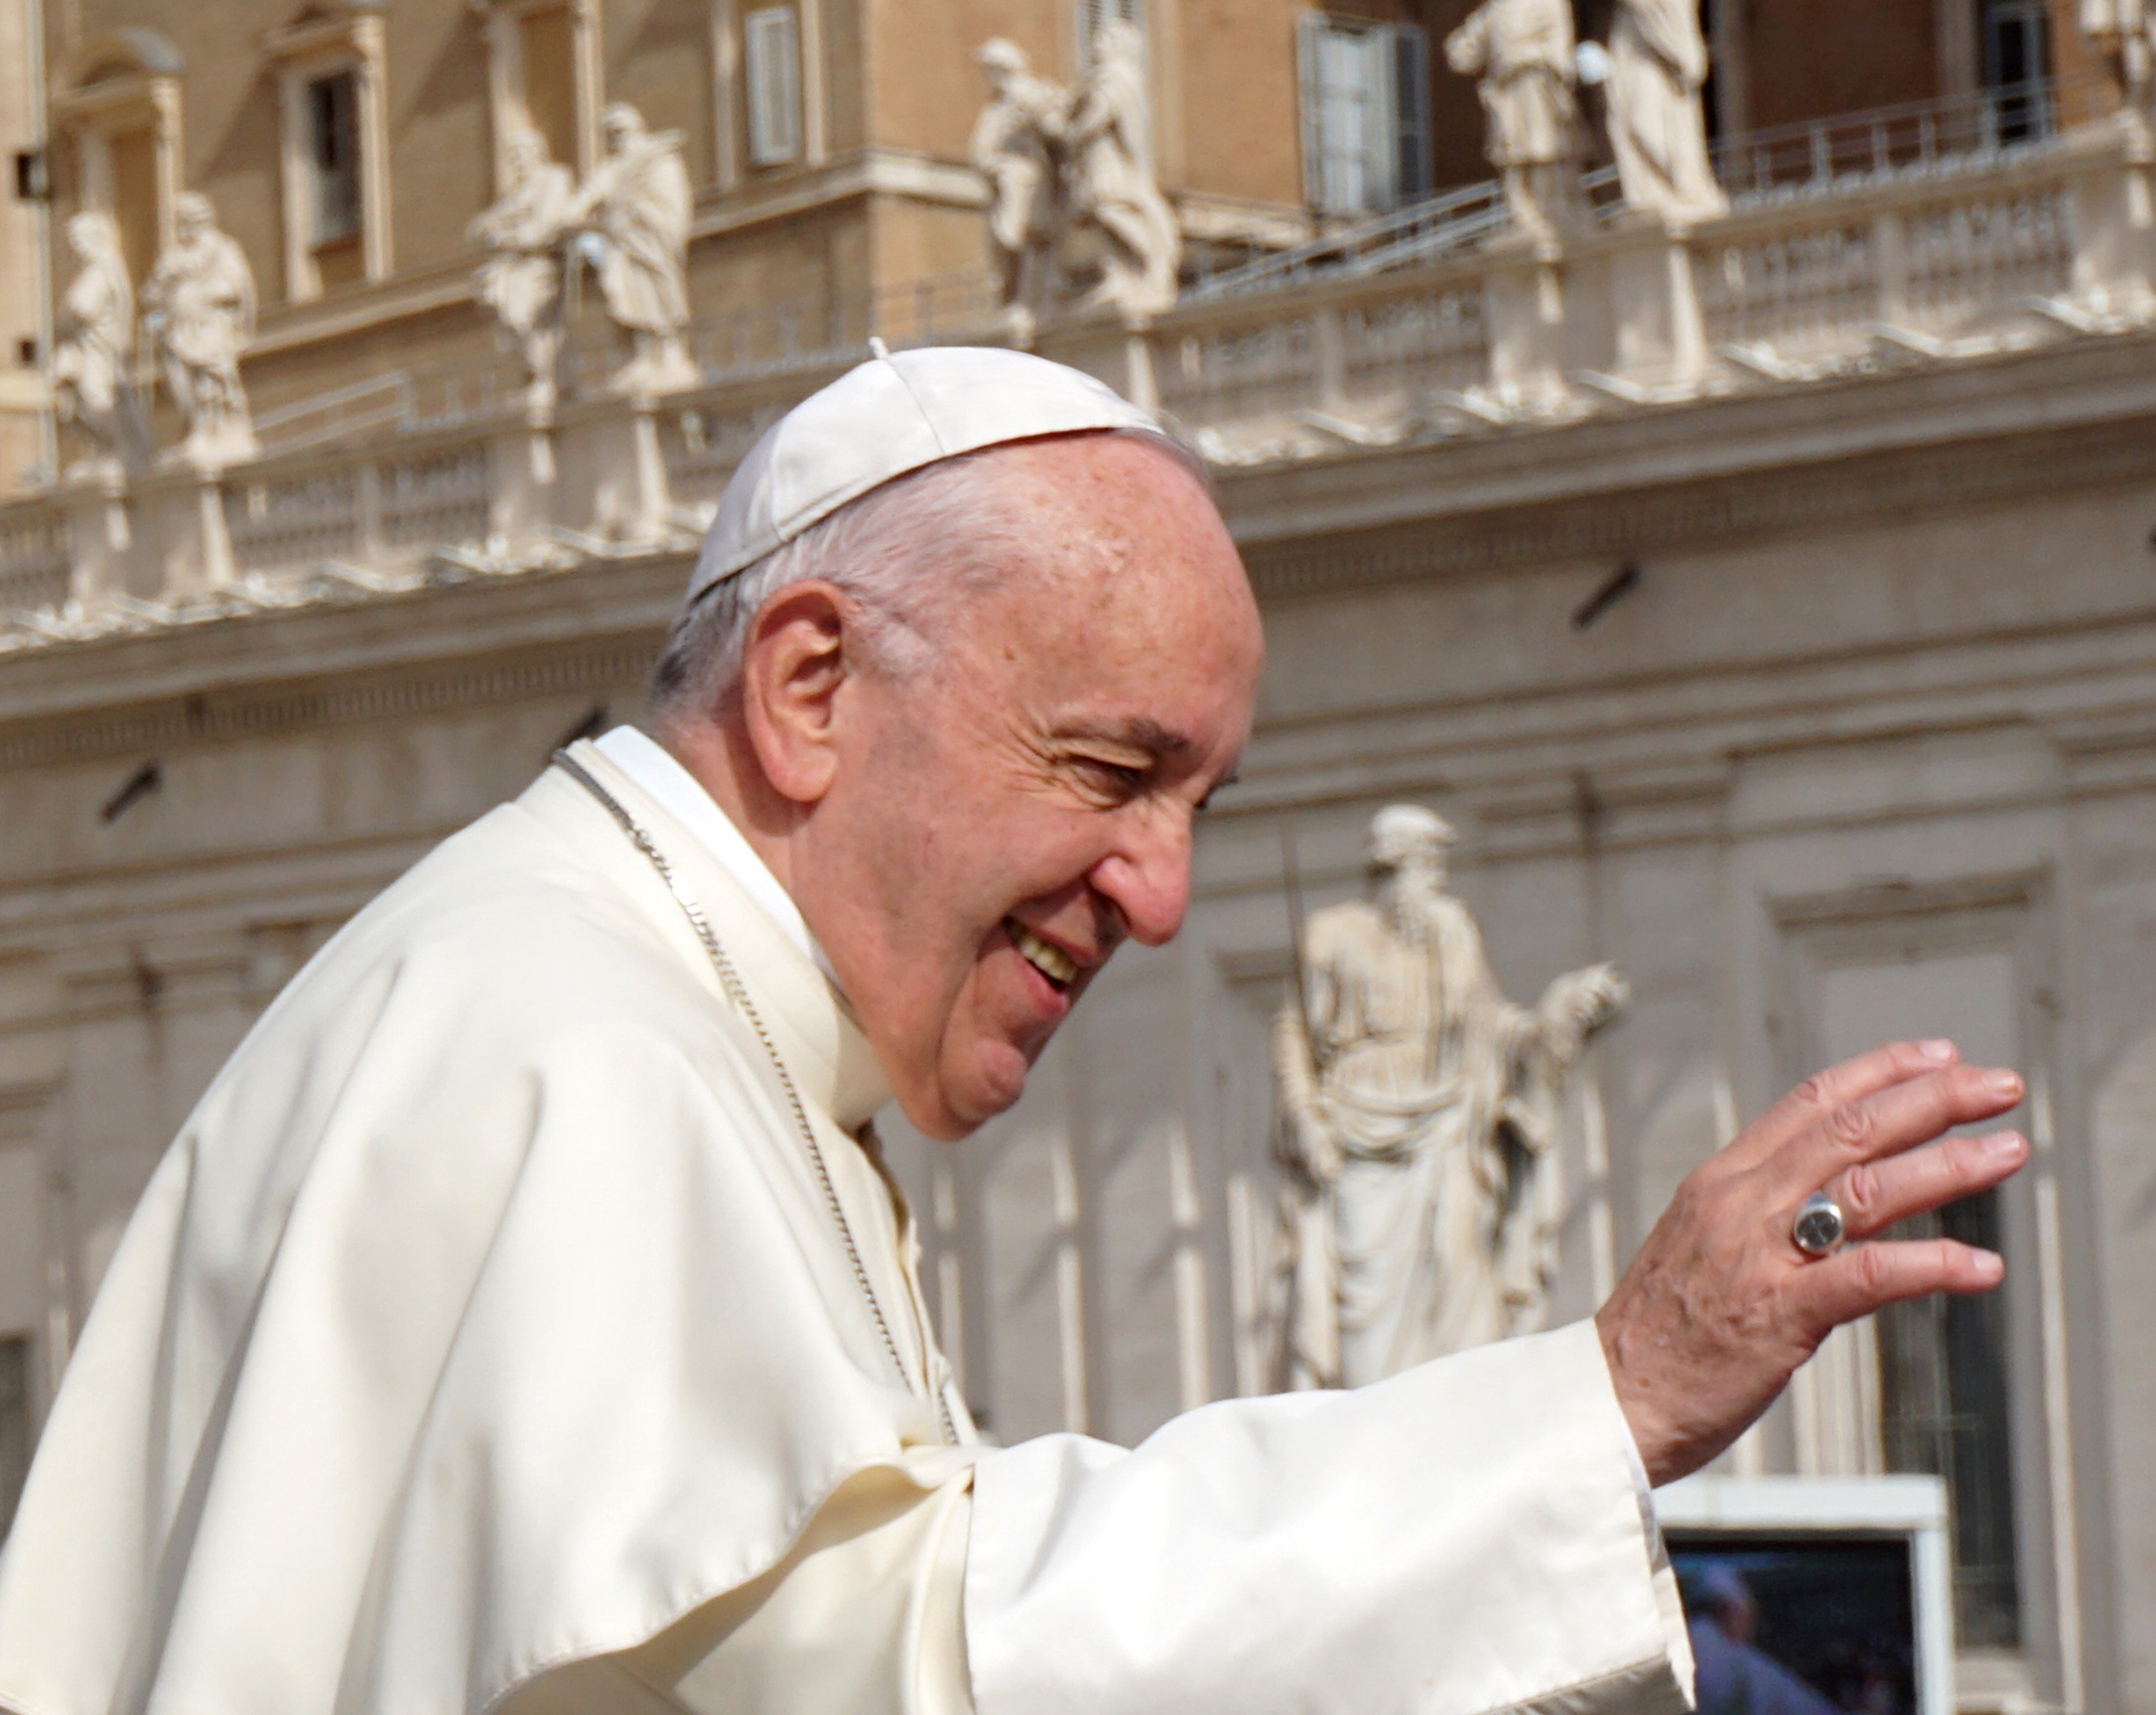 Responding to Charles Camosy's open letter to the pope